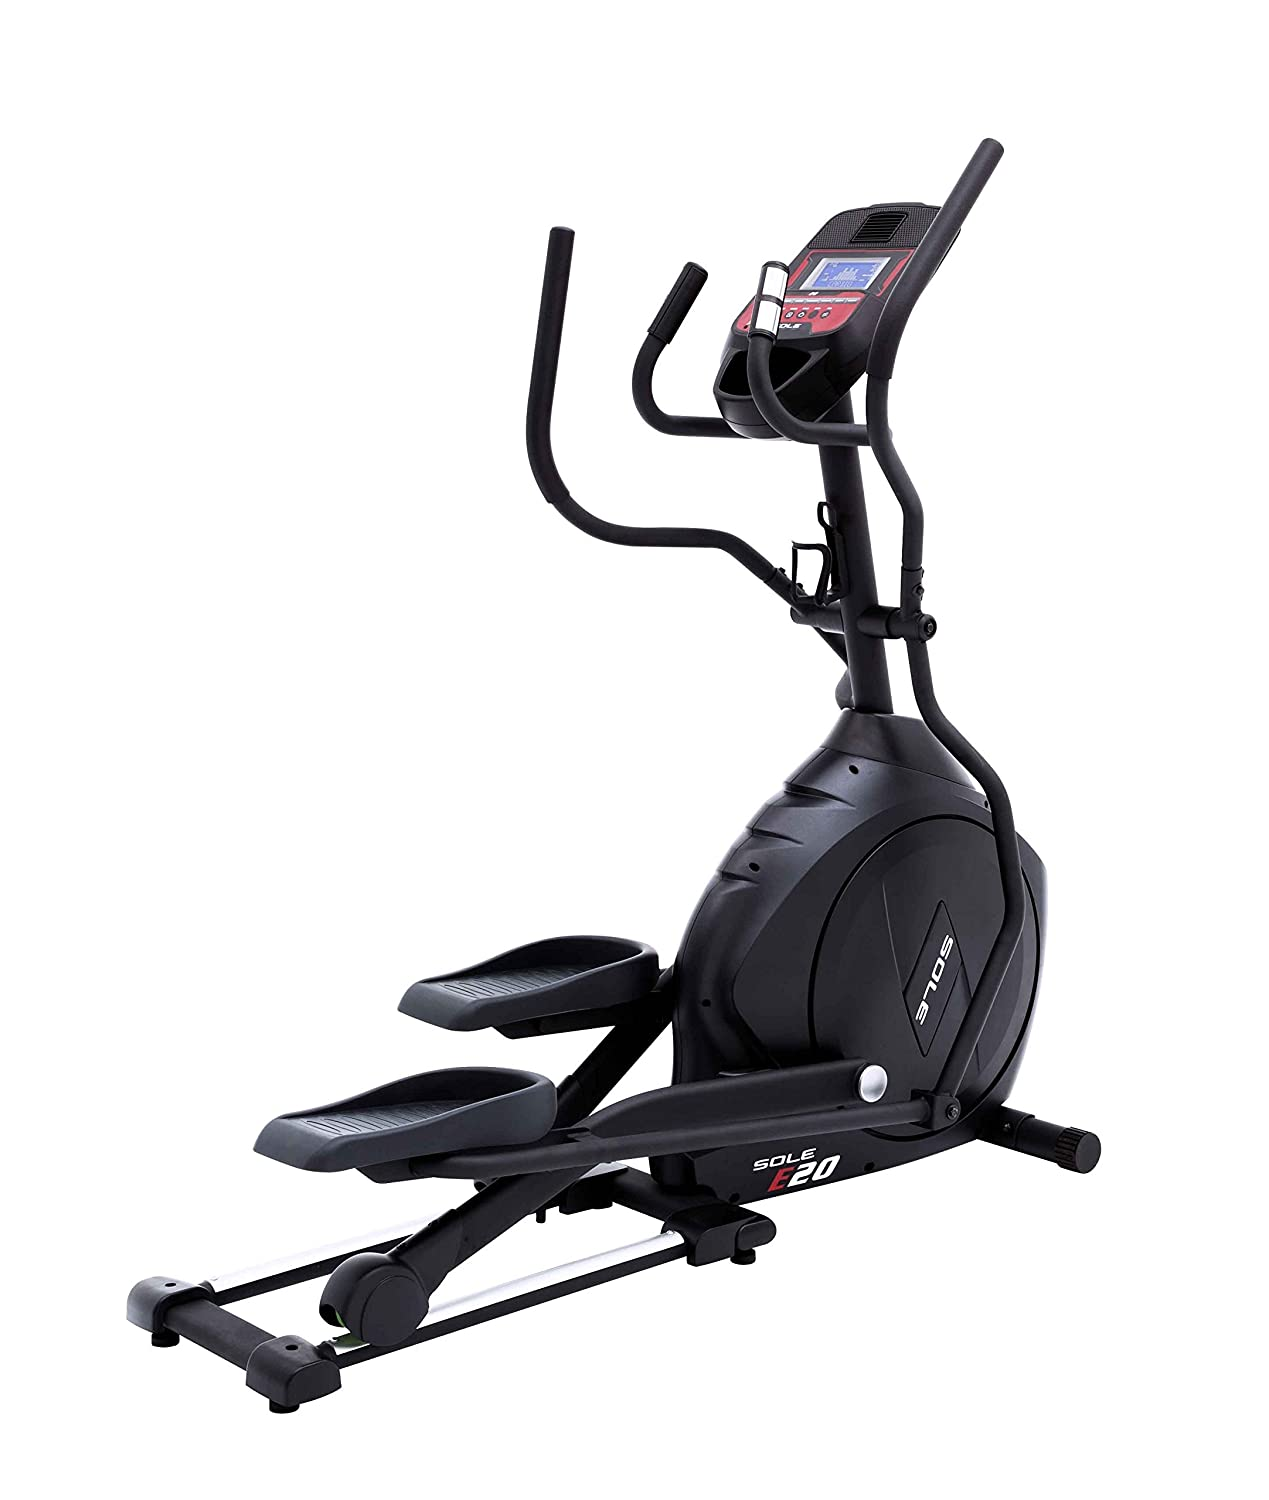 Sole E20 Cross Trainer